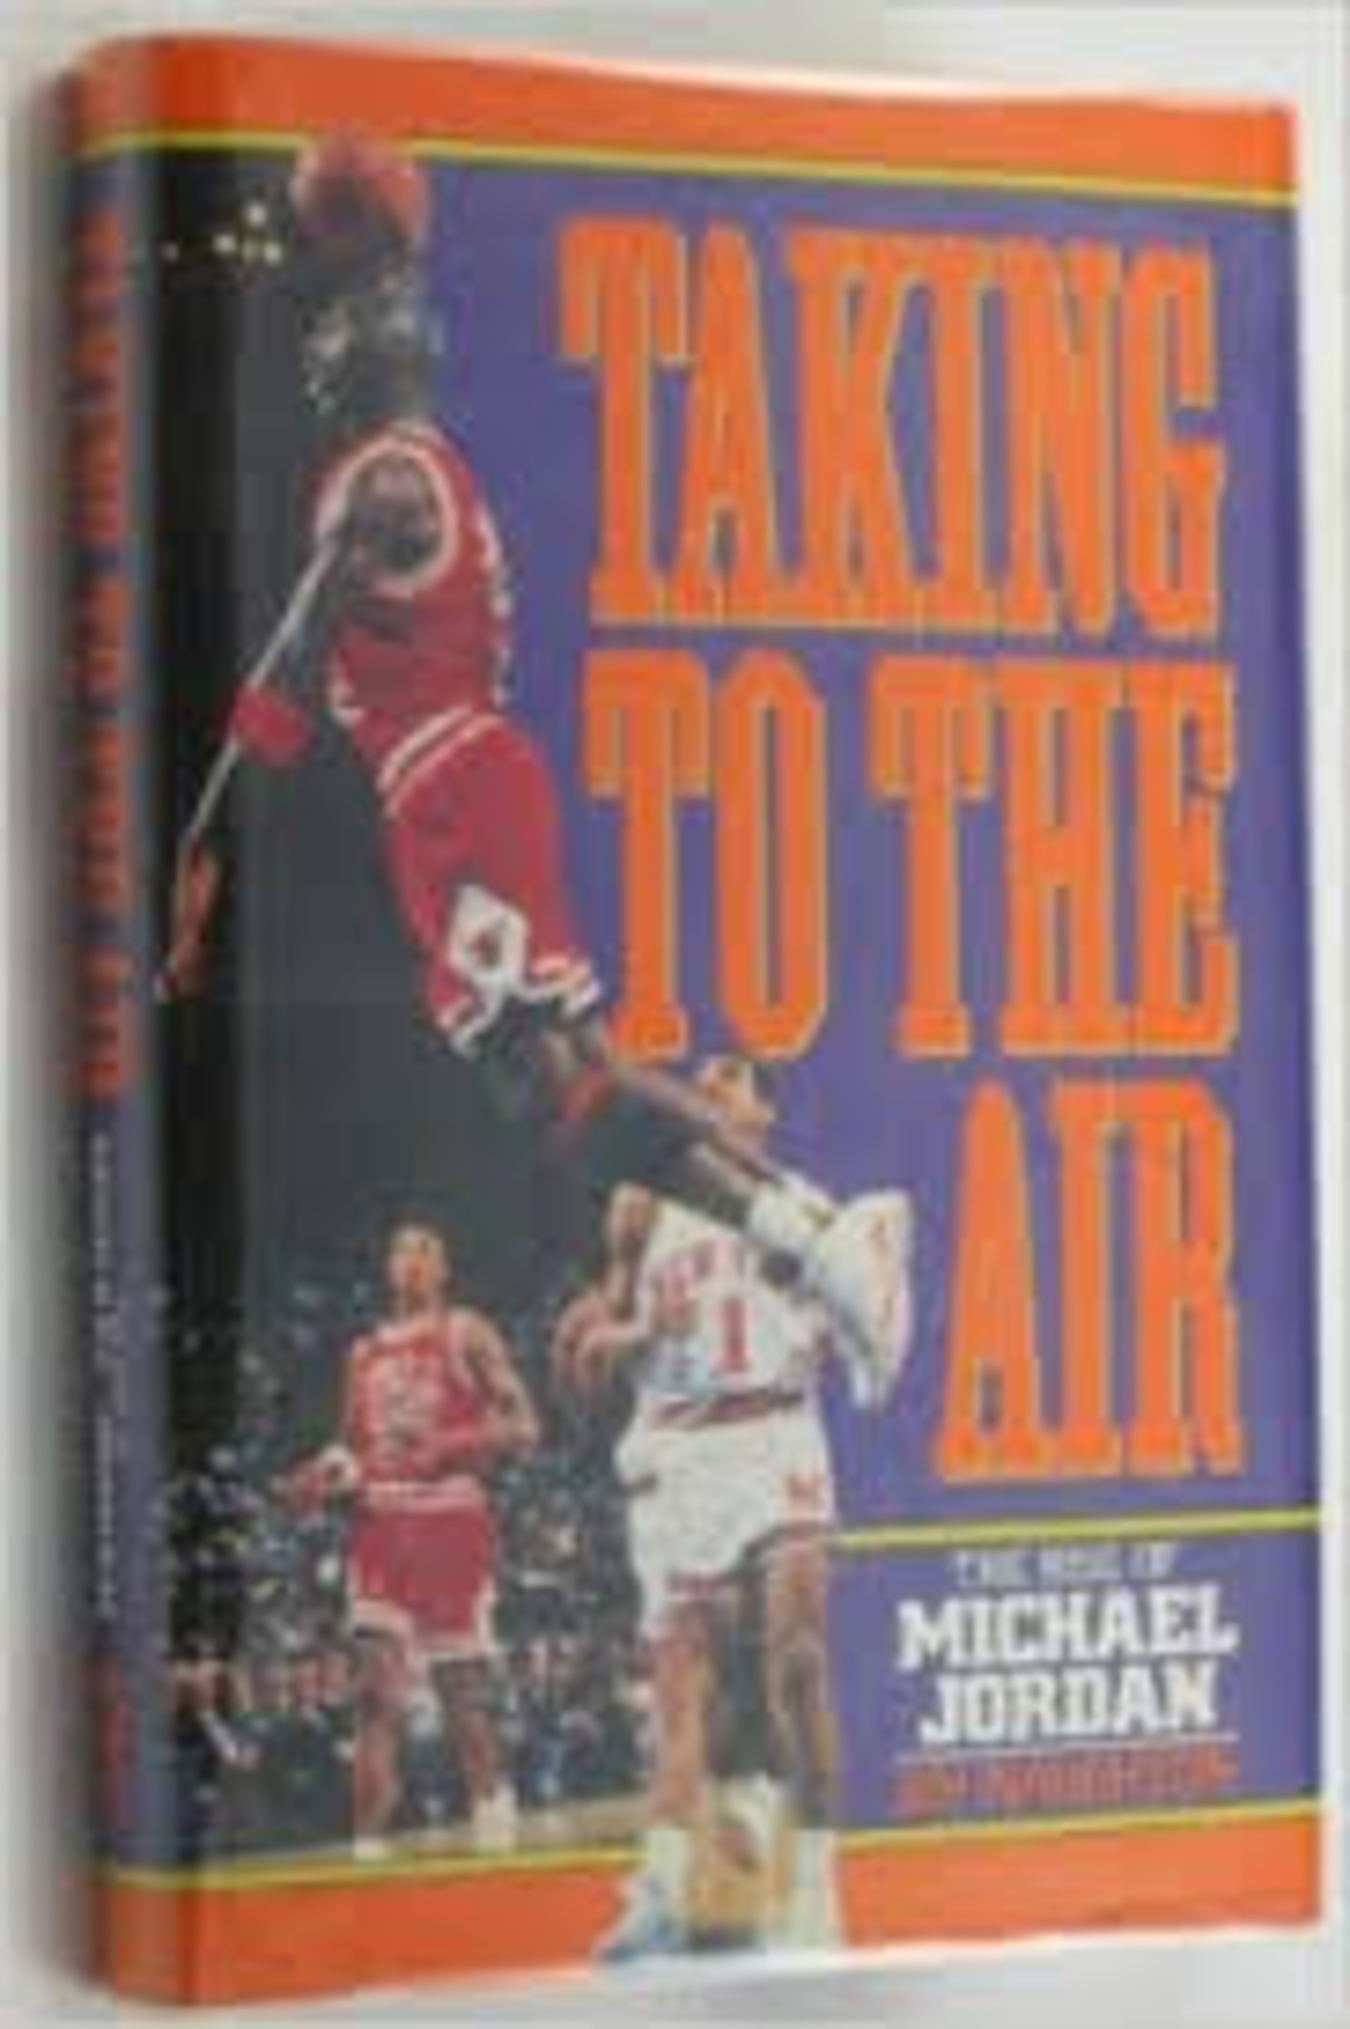 a description of the main character michael jordan in the book taking to the air by jim naughton Despite a recent attempt by chris douglas-roberts to reintroduce short shorts to the nba, the notion of the micro bottoms coming back despite fashion's reciprocal nature seems far fetched.